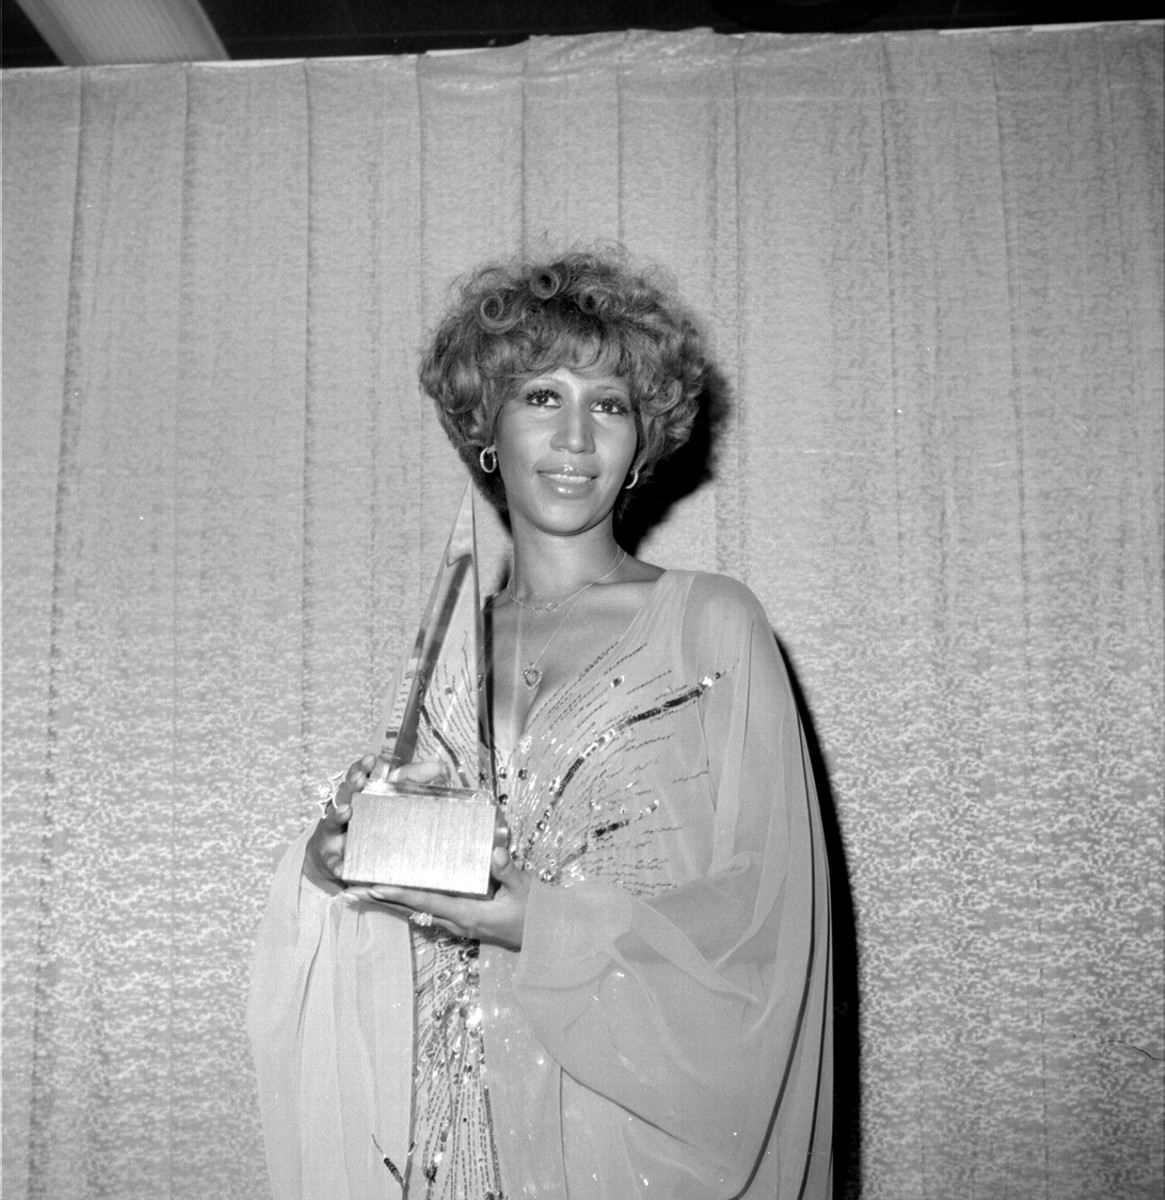 Aretha Franklin: At the American Music Awards, Aretha Franklin poses for a  portrait backstage  with her trophy for 'Favorite Soul/R&B Artist' in her hands on January 31, 1977, in Santa Monica, California. (Photo by  Michael Ochs Archives/Getty Images)